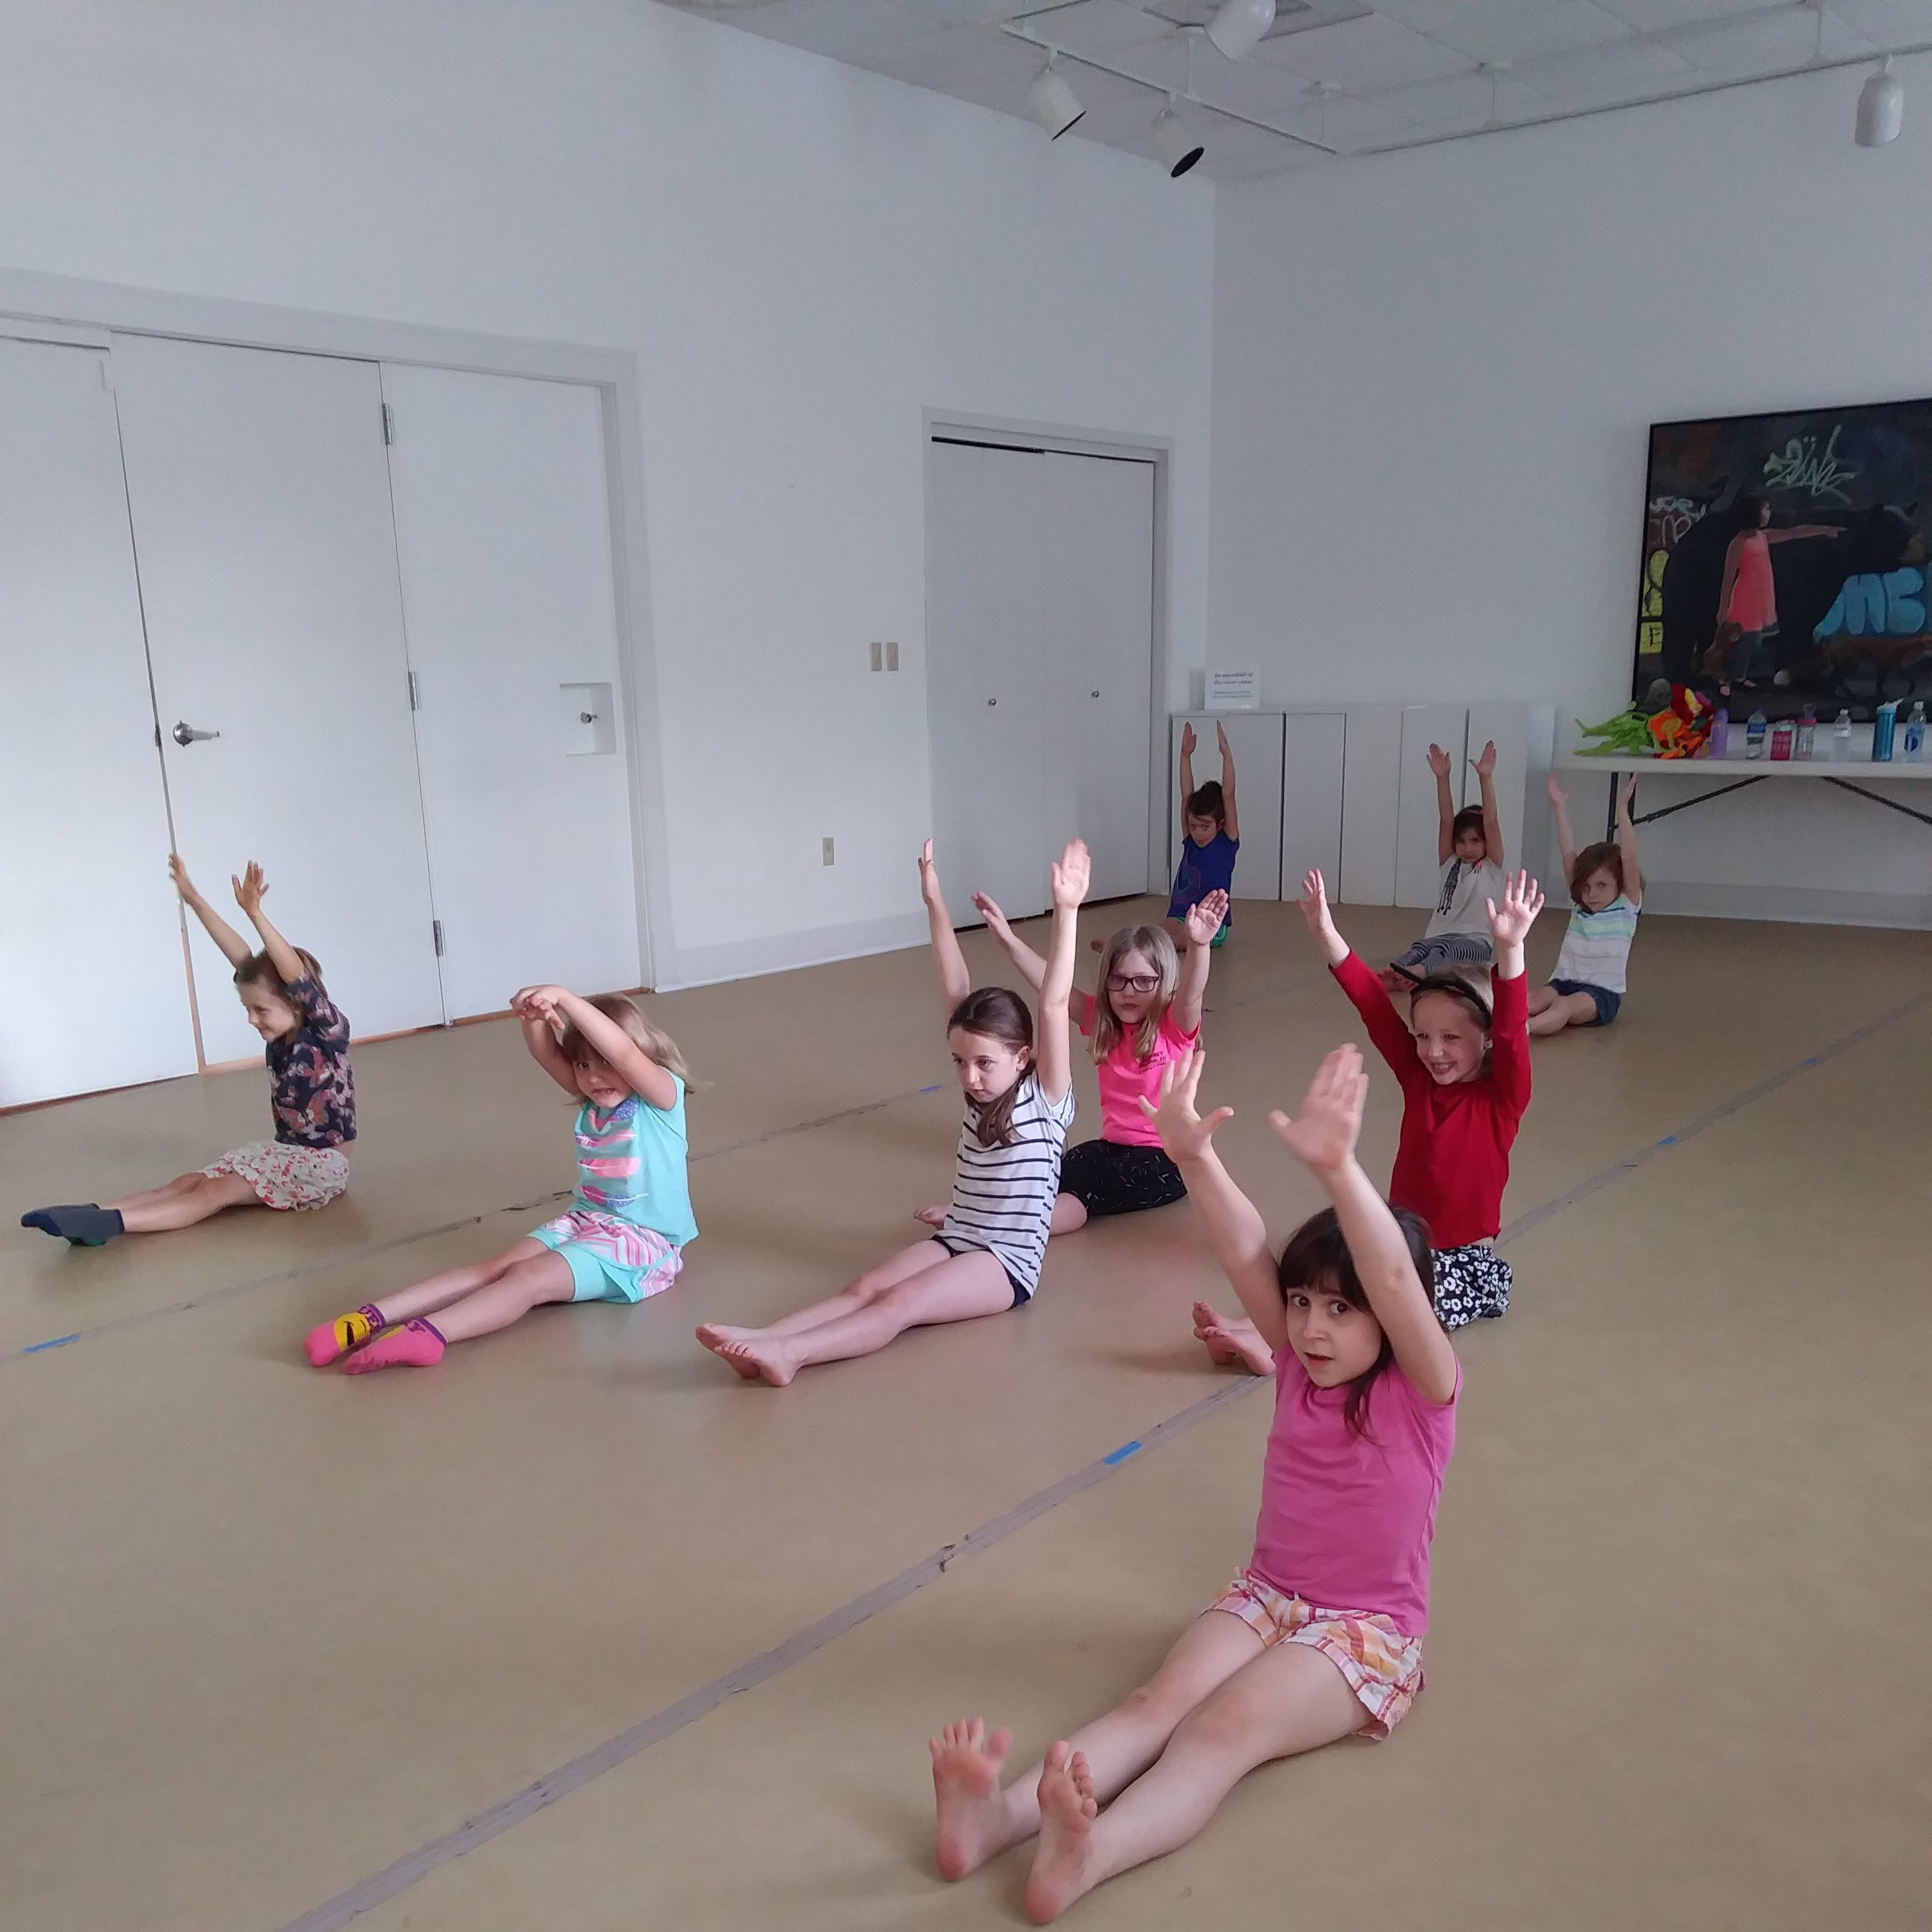 Back to school means back to dance at Black Mountain Center for the Arts